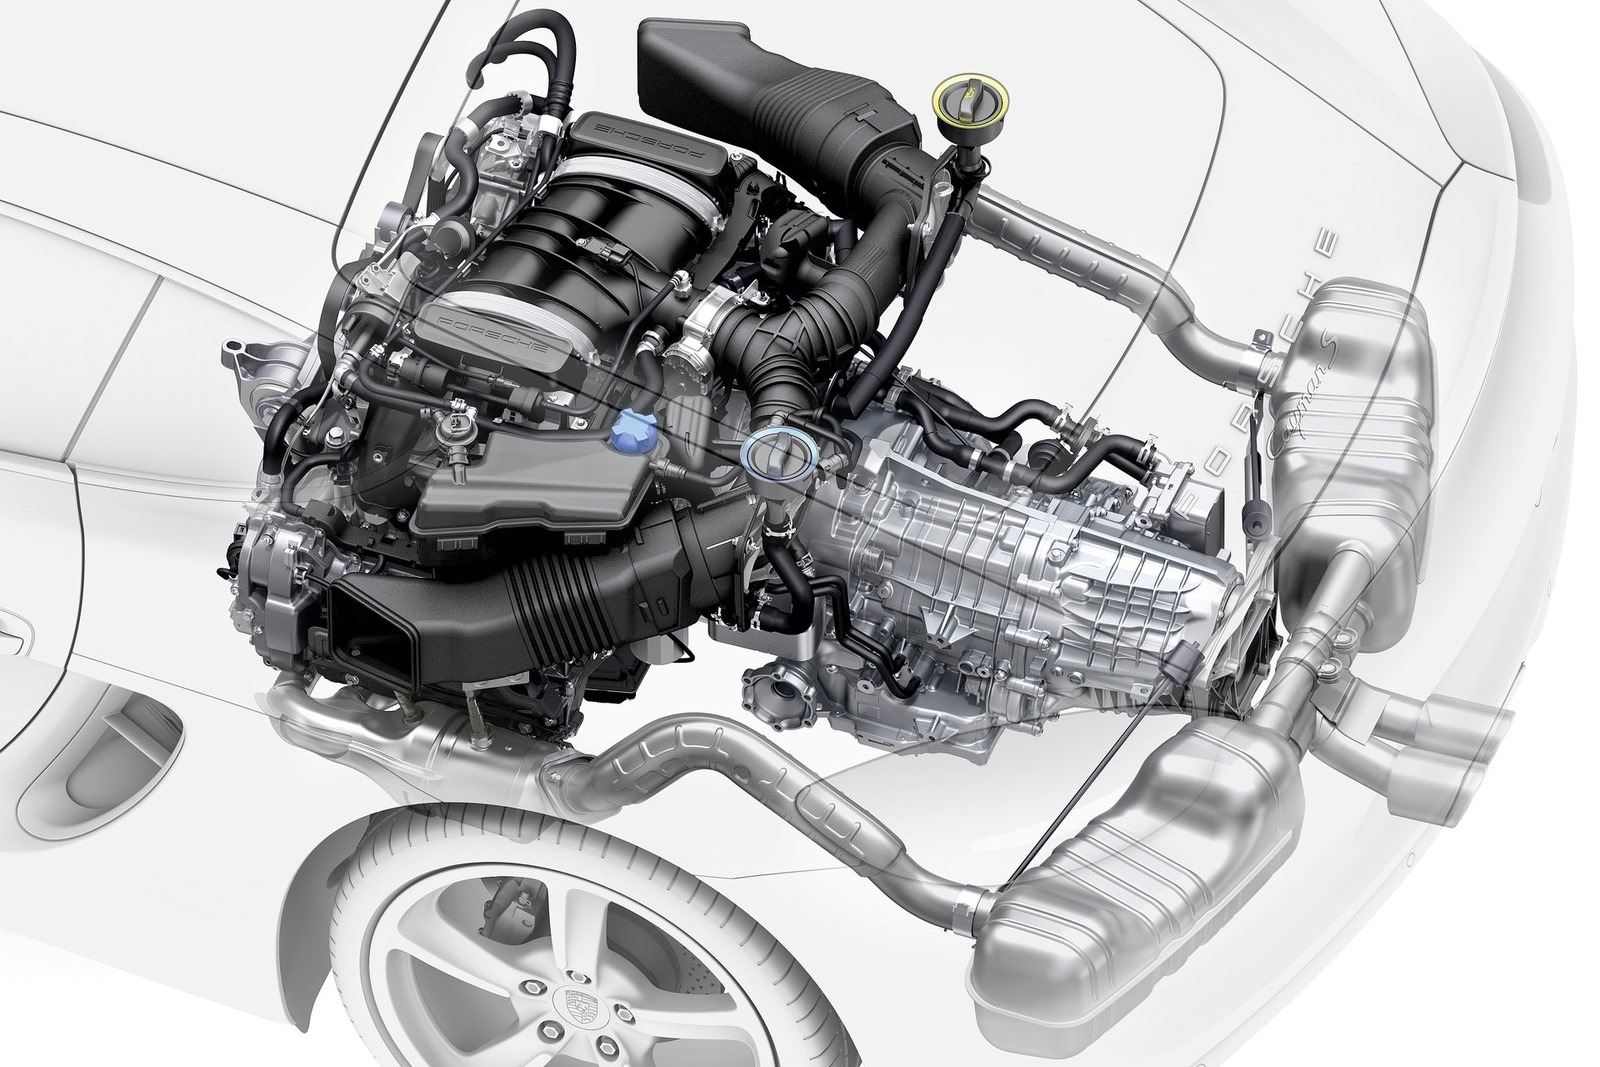 Porsche rumored to launch new flat four-cylinder engine